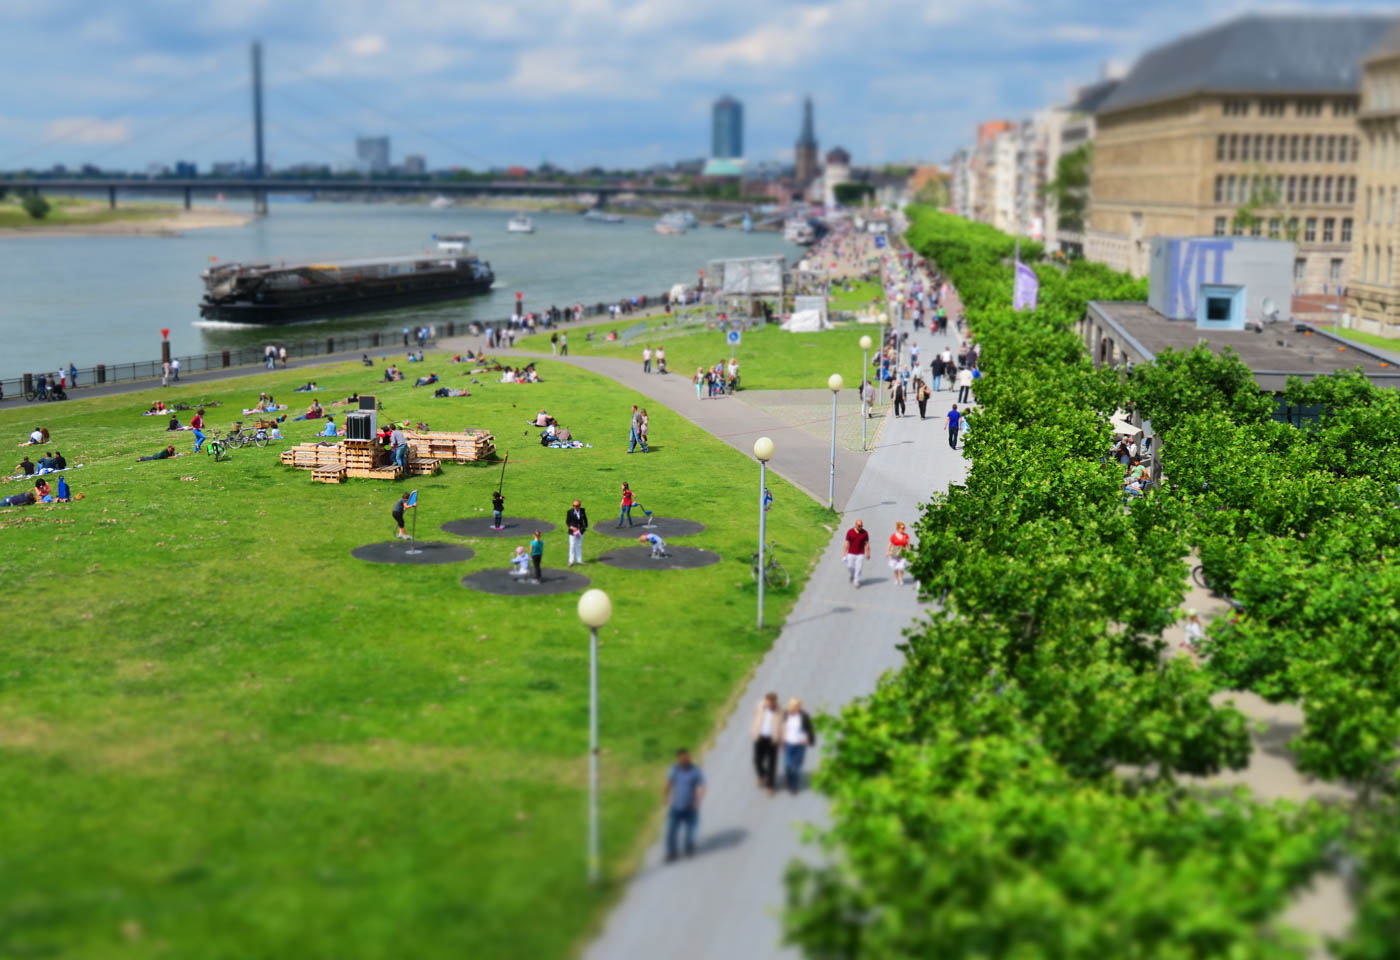 Park by the water taken with minature effect taken with Canon PowerShot SX720 HS compact camera